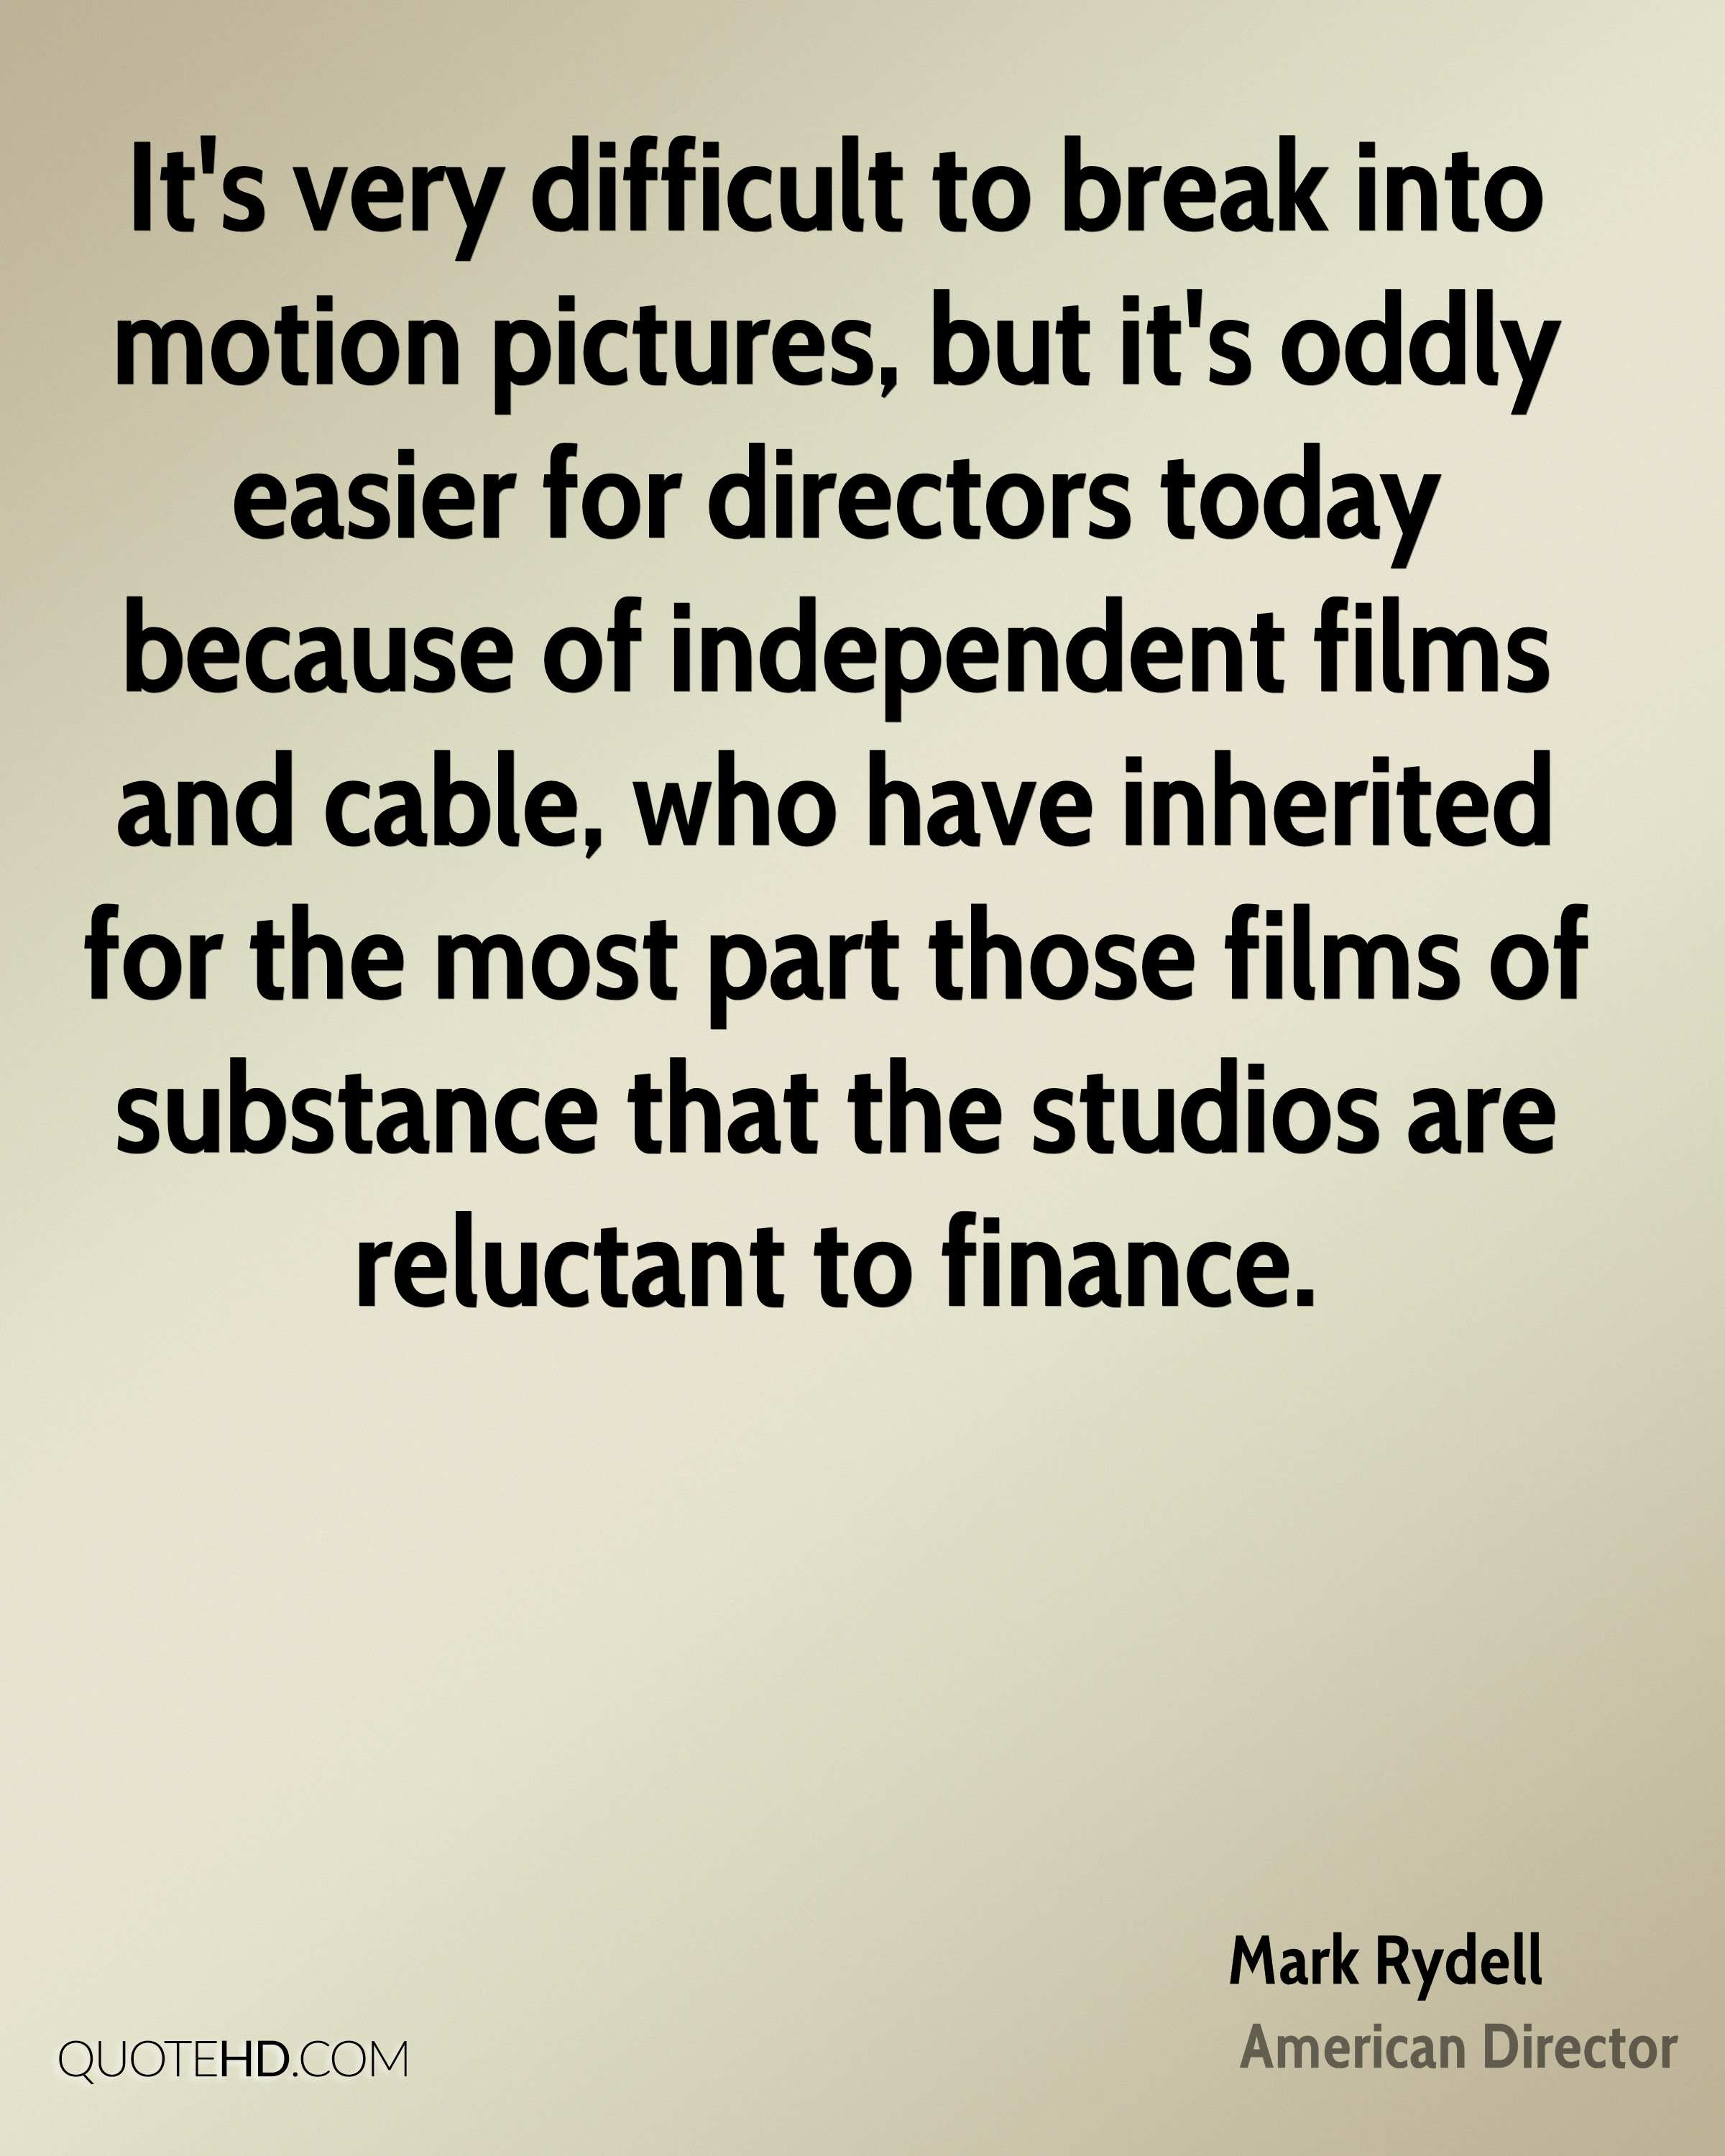 It's very difficult to break into motion pictures, but it's oddly easier for directors today because of independent films and cable, who have inherited for the most part those films of substance that the studios are reluctant to finance.